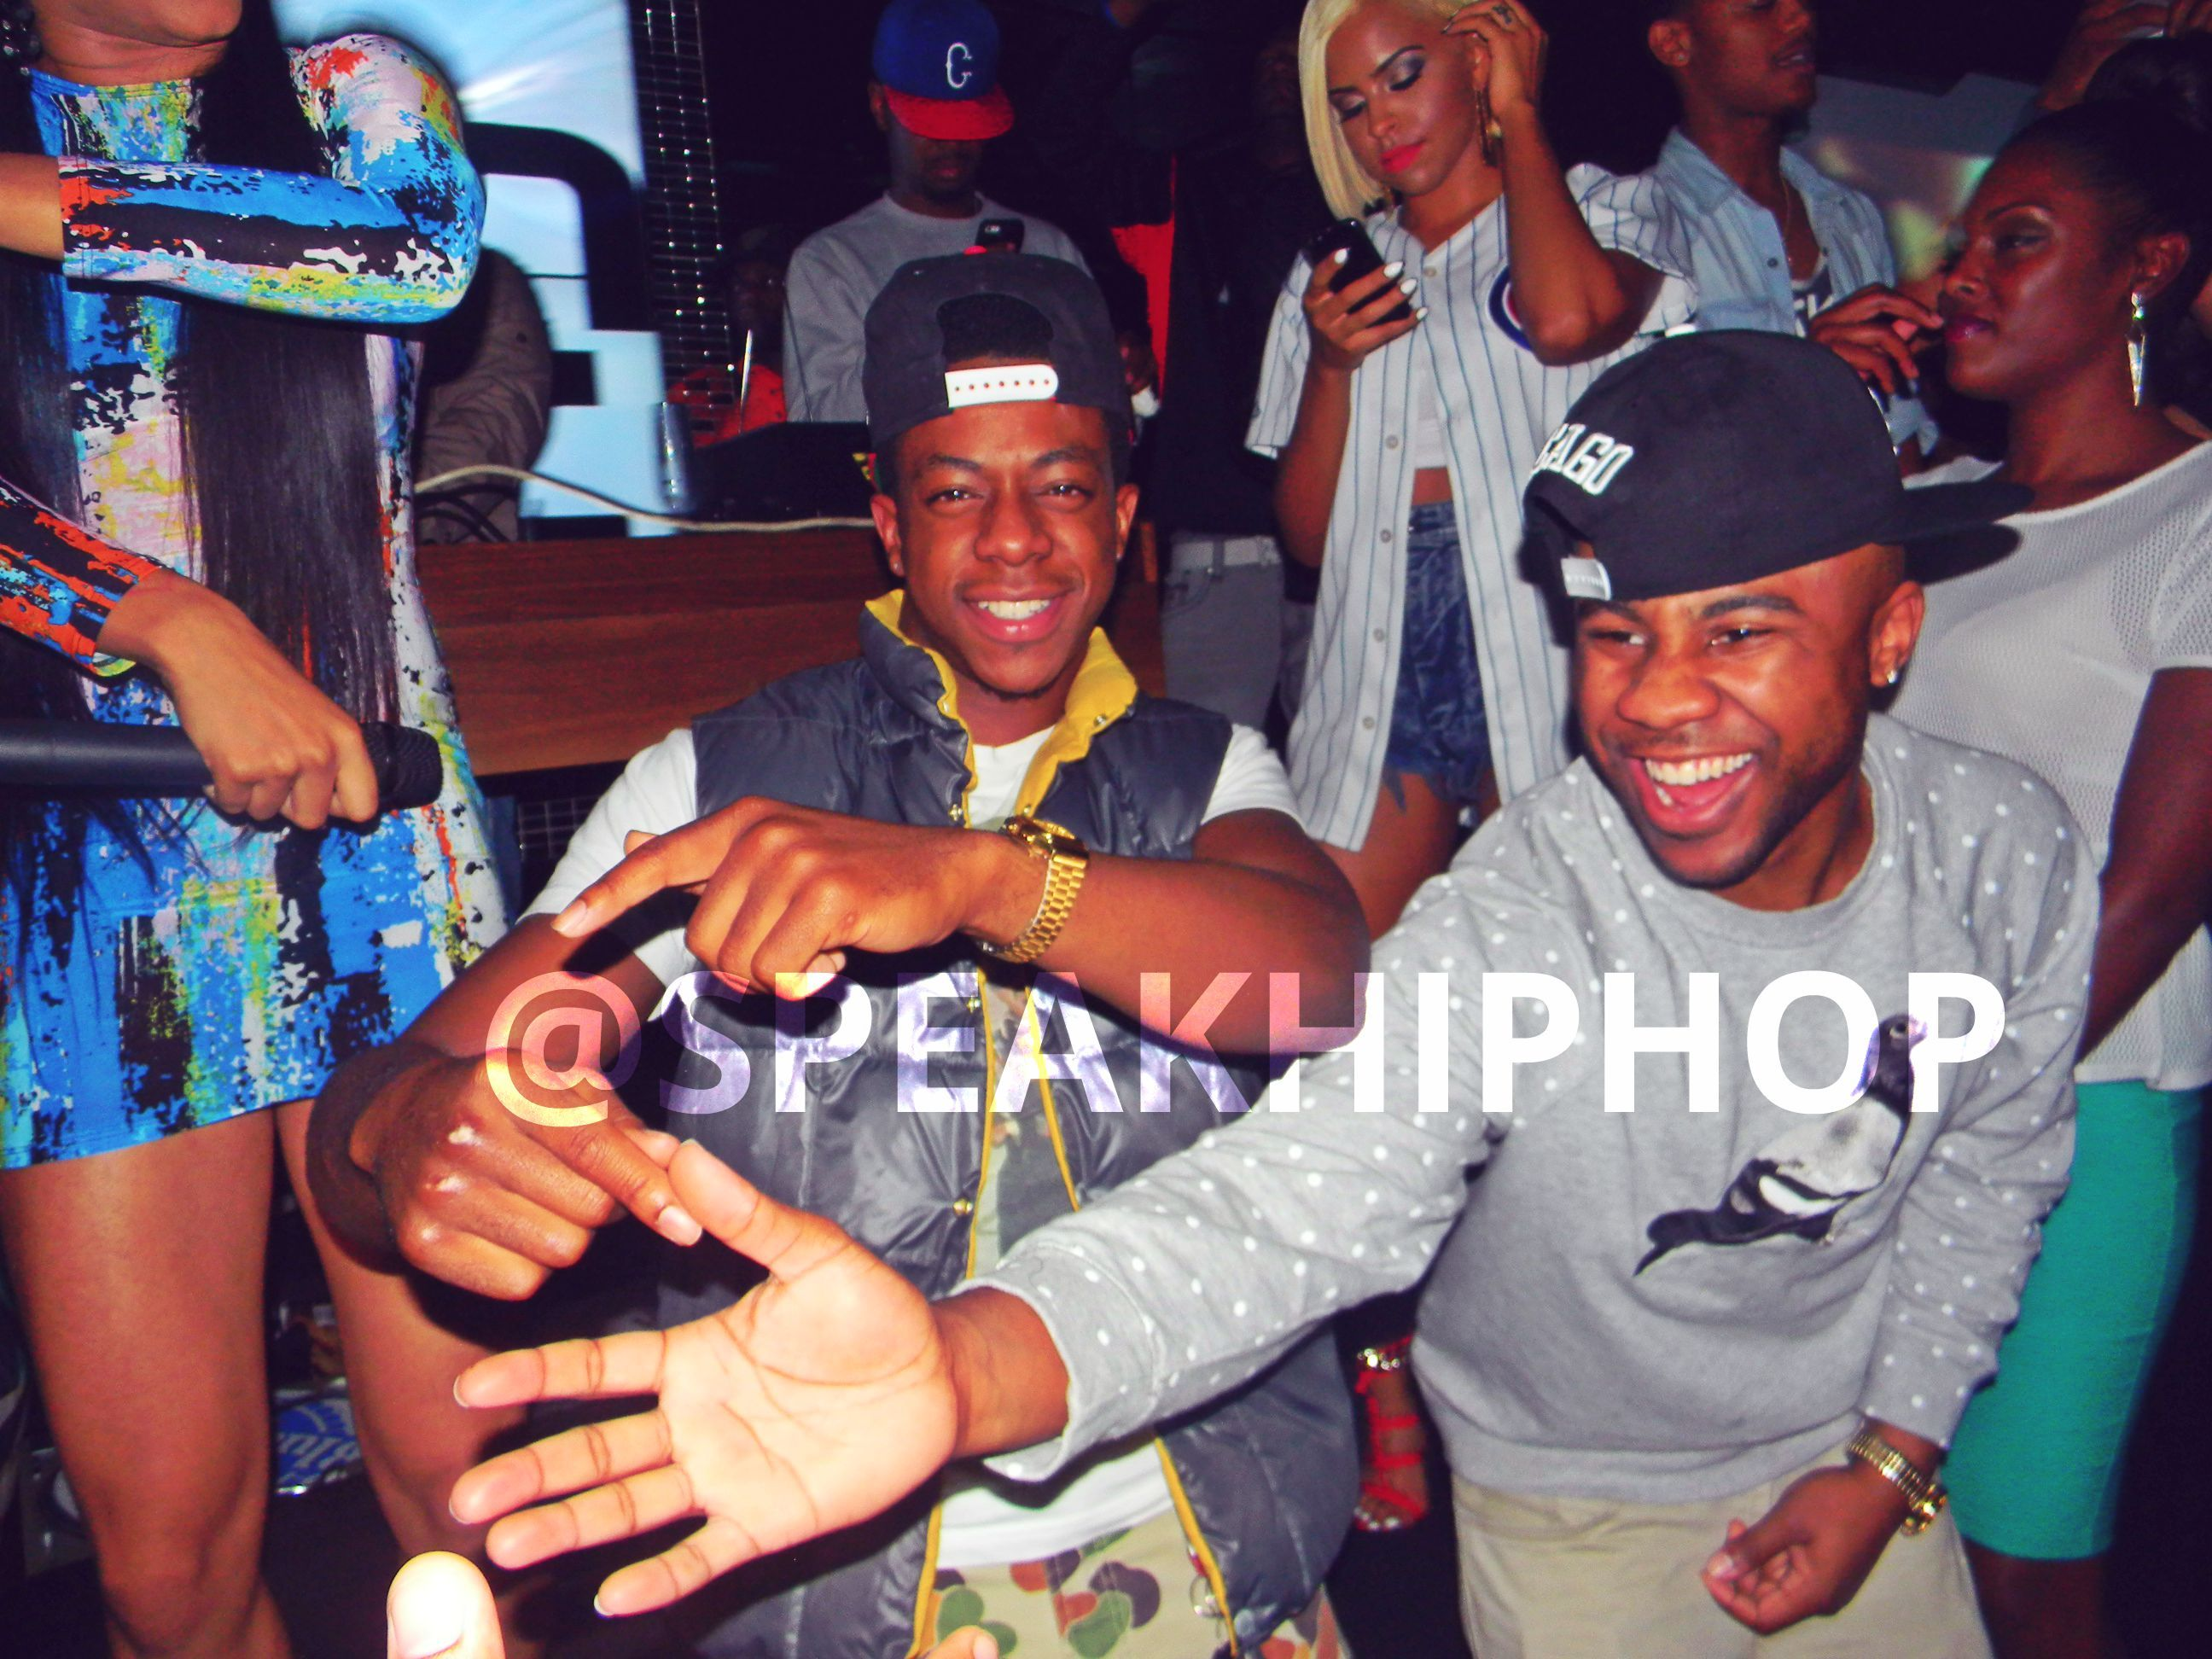 Chicago Celebrities At The Bevy On September 15th Celebrities Captain Hat Performance